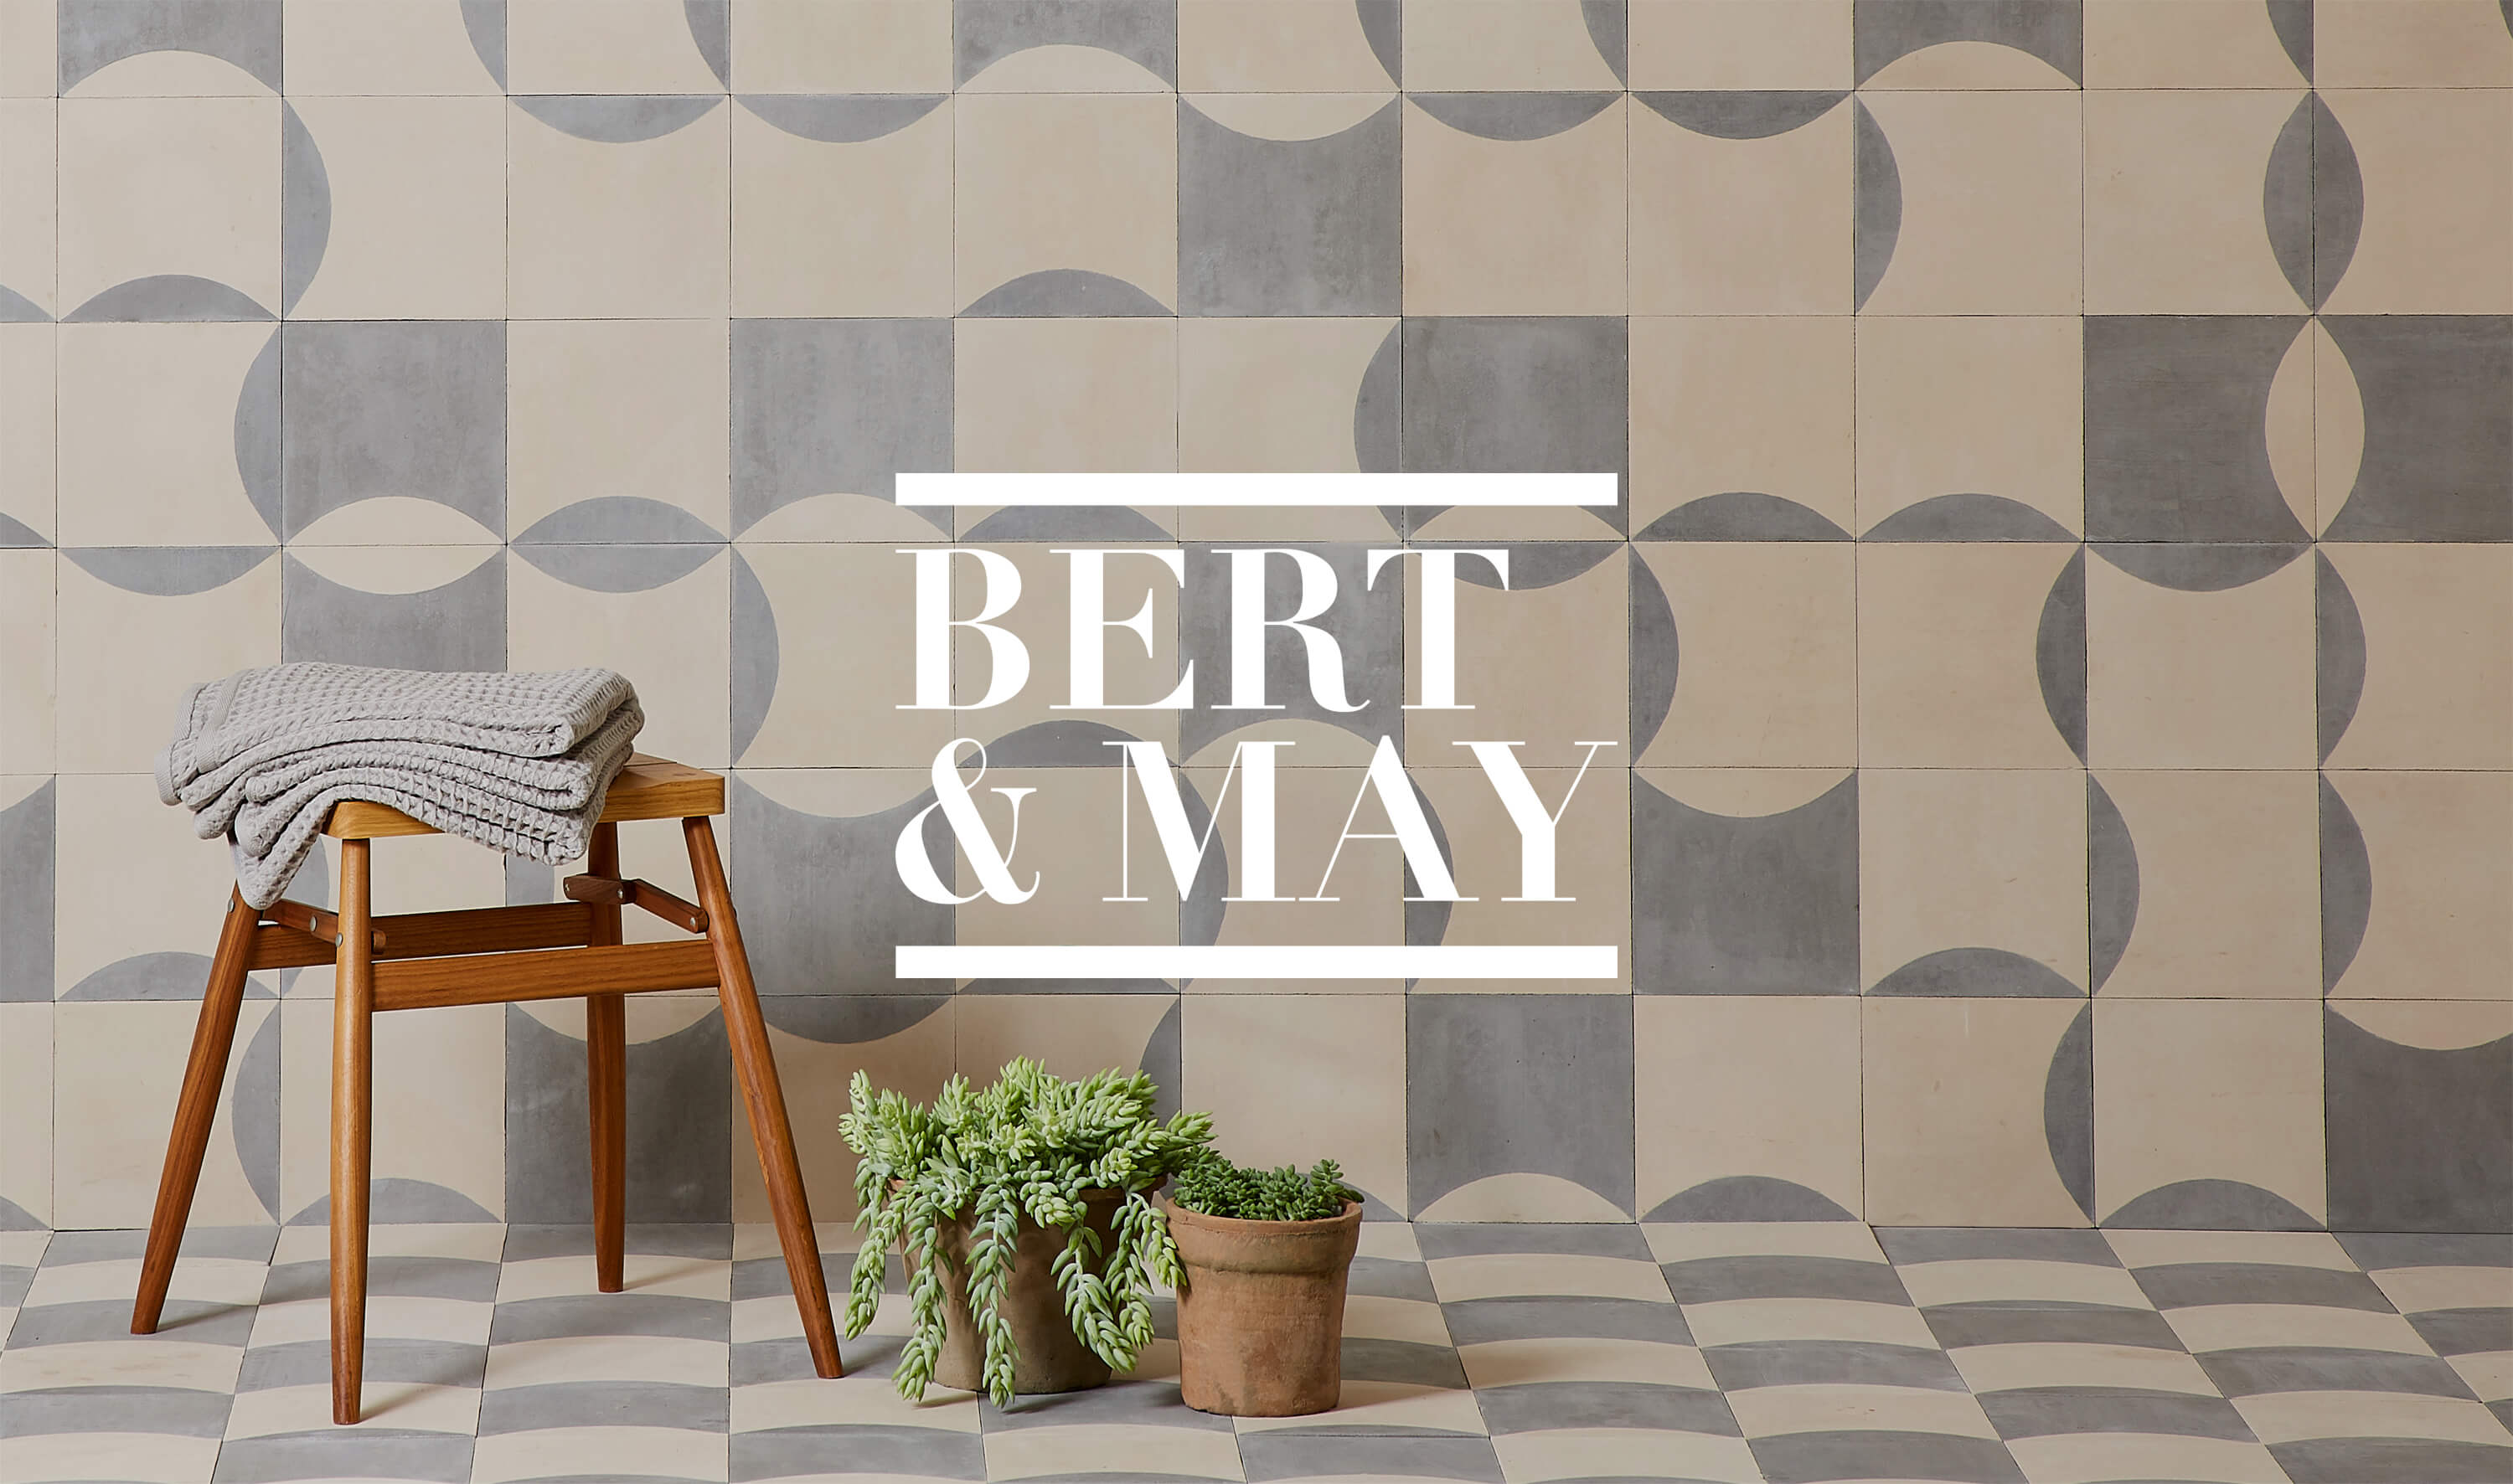 Bert & May case study